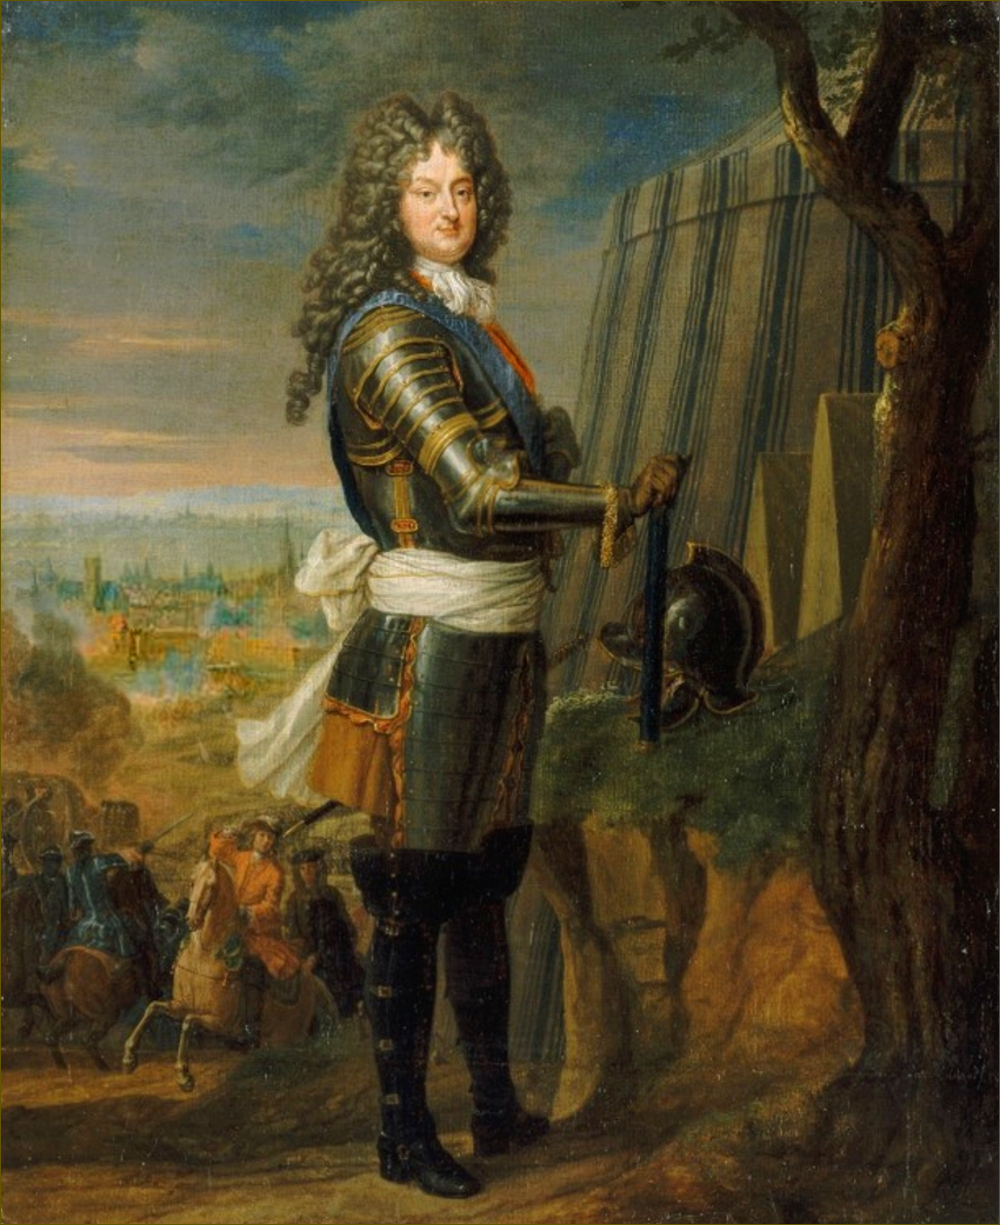 Fichier:The Régent of France, Philippe d'Orléans in 1717 after Jean  Baptiste Santerre.jpg — Wikipédia